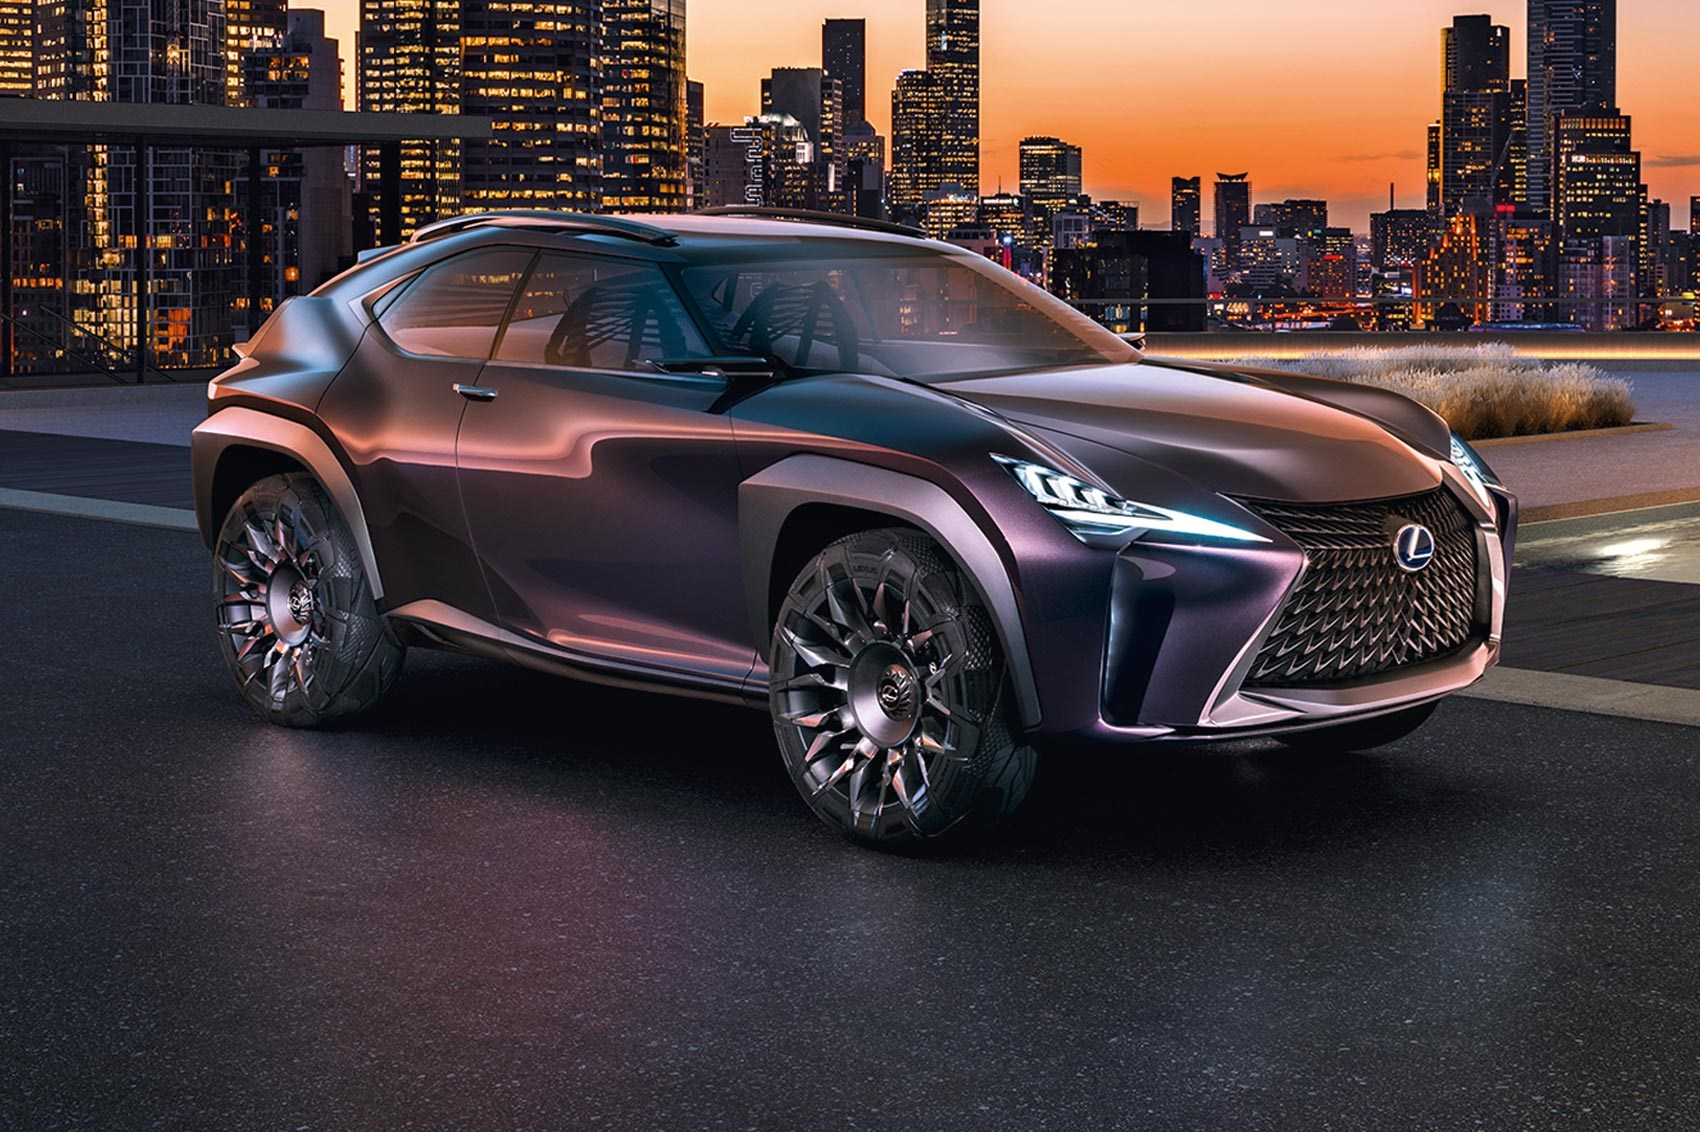 French fancy: Lexus UX crossover concept revealed | CAR ...